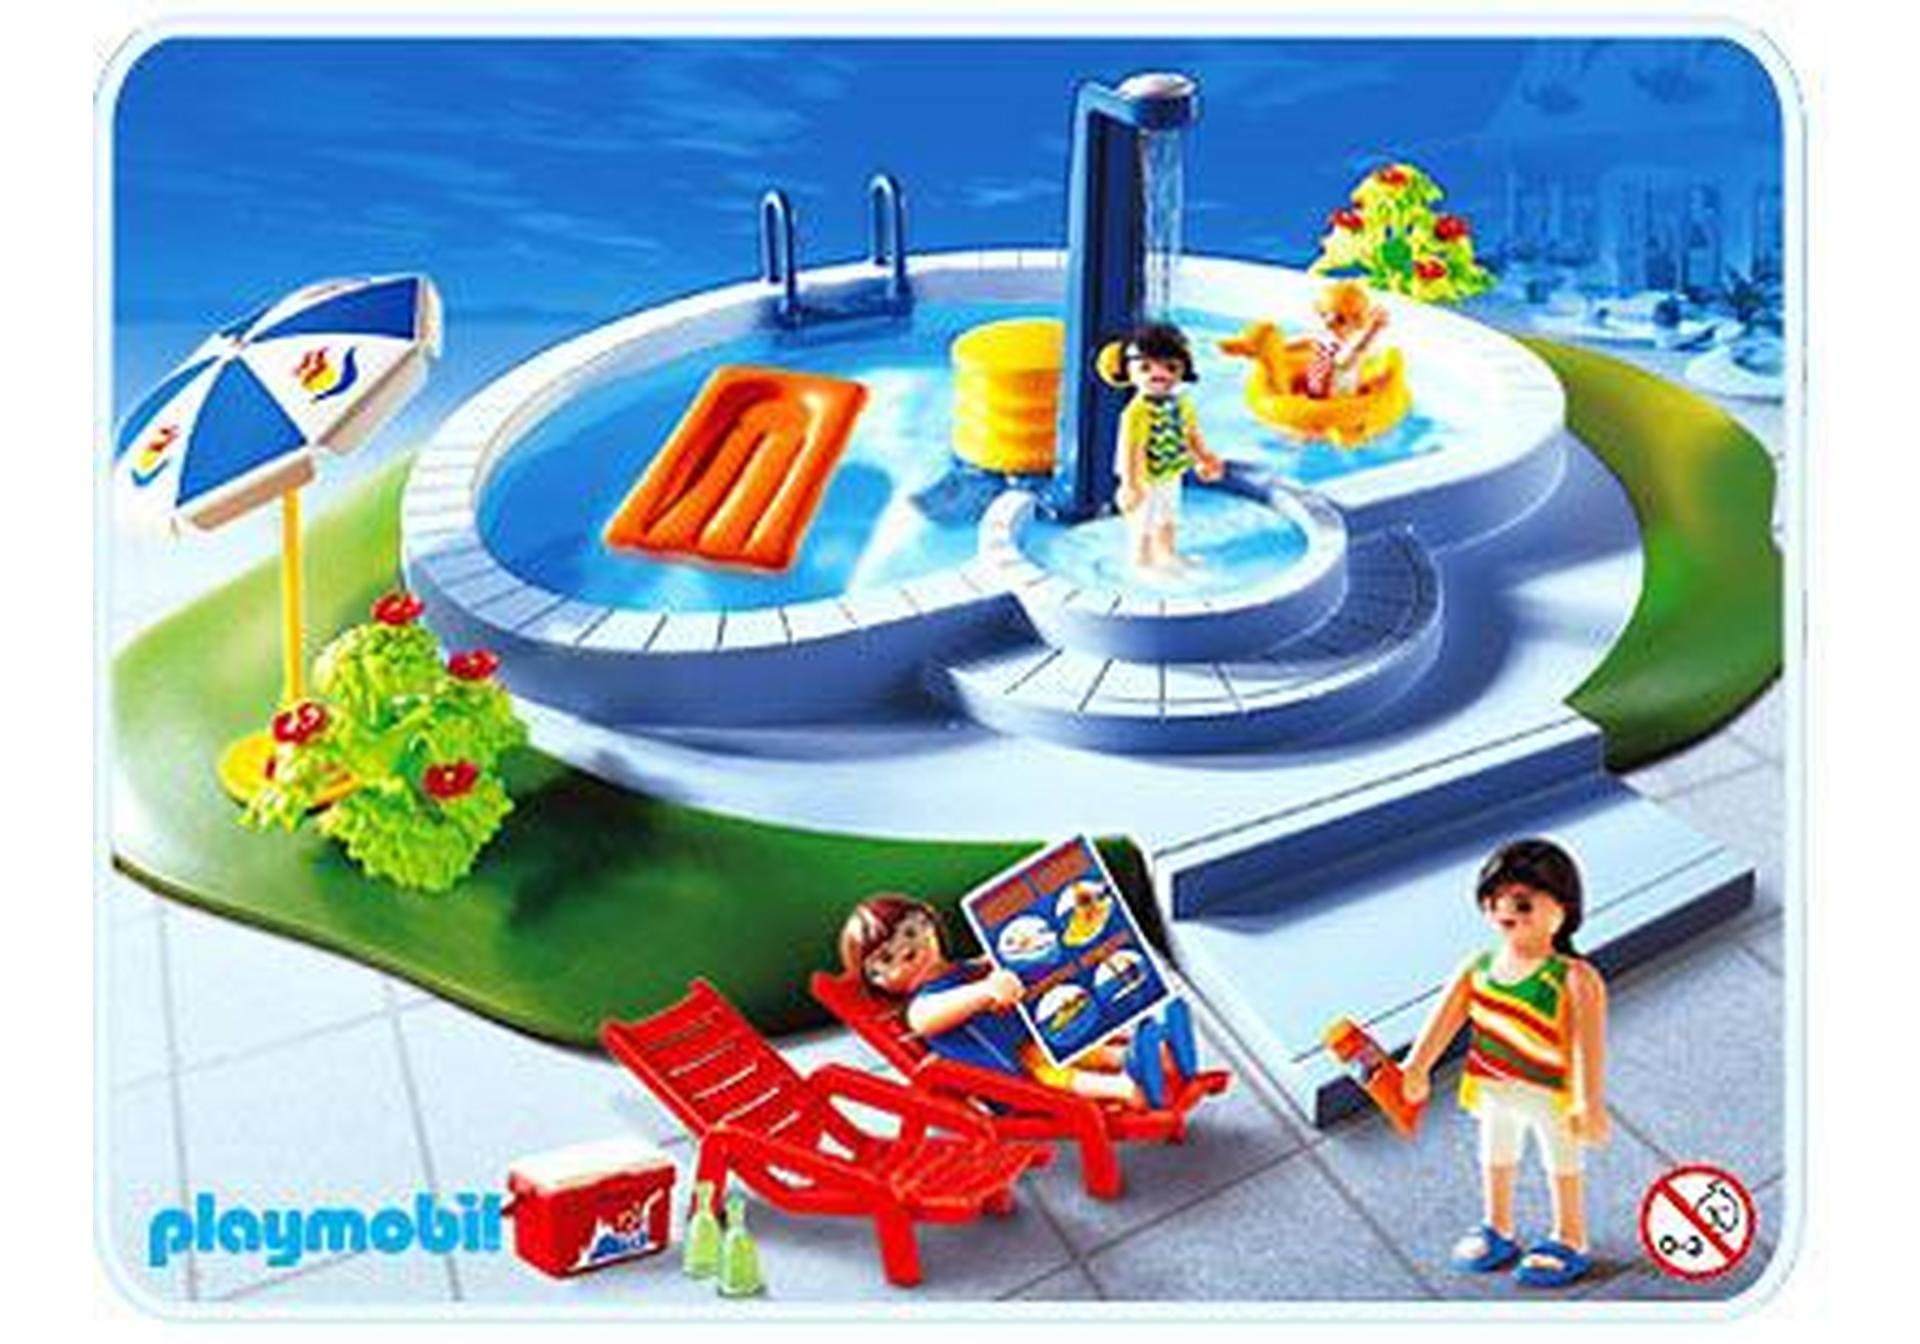 Famille piscine 3205 b playmobil france for Piscine playmobil 3205